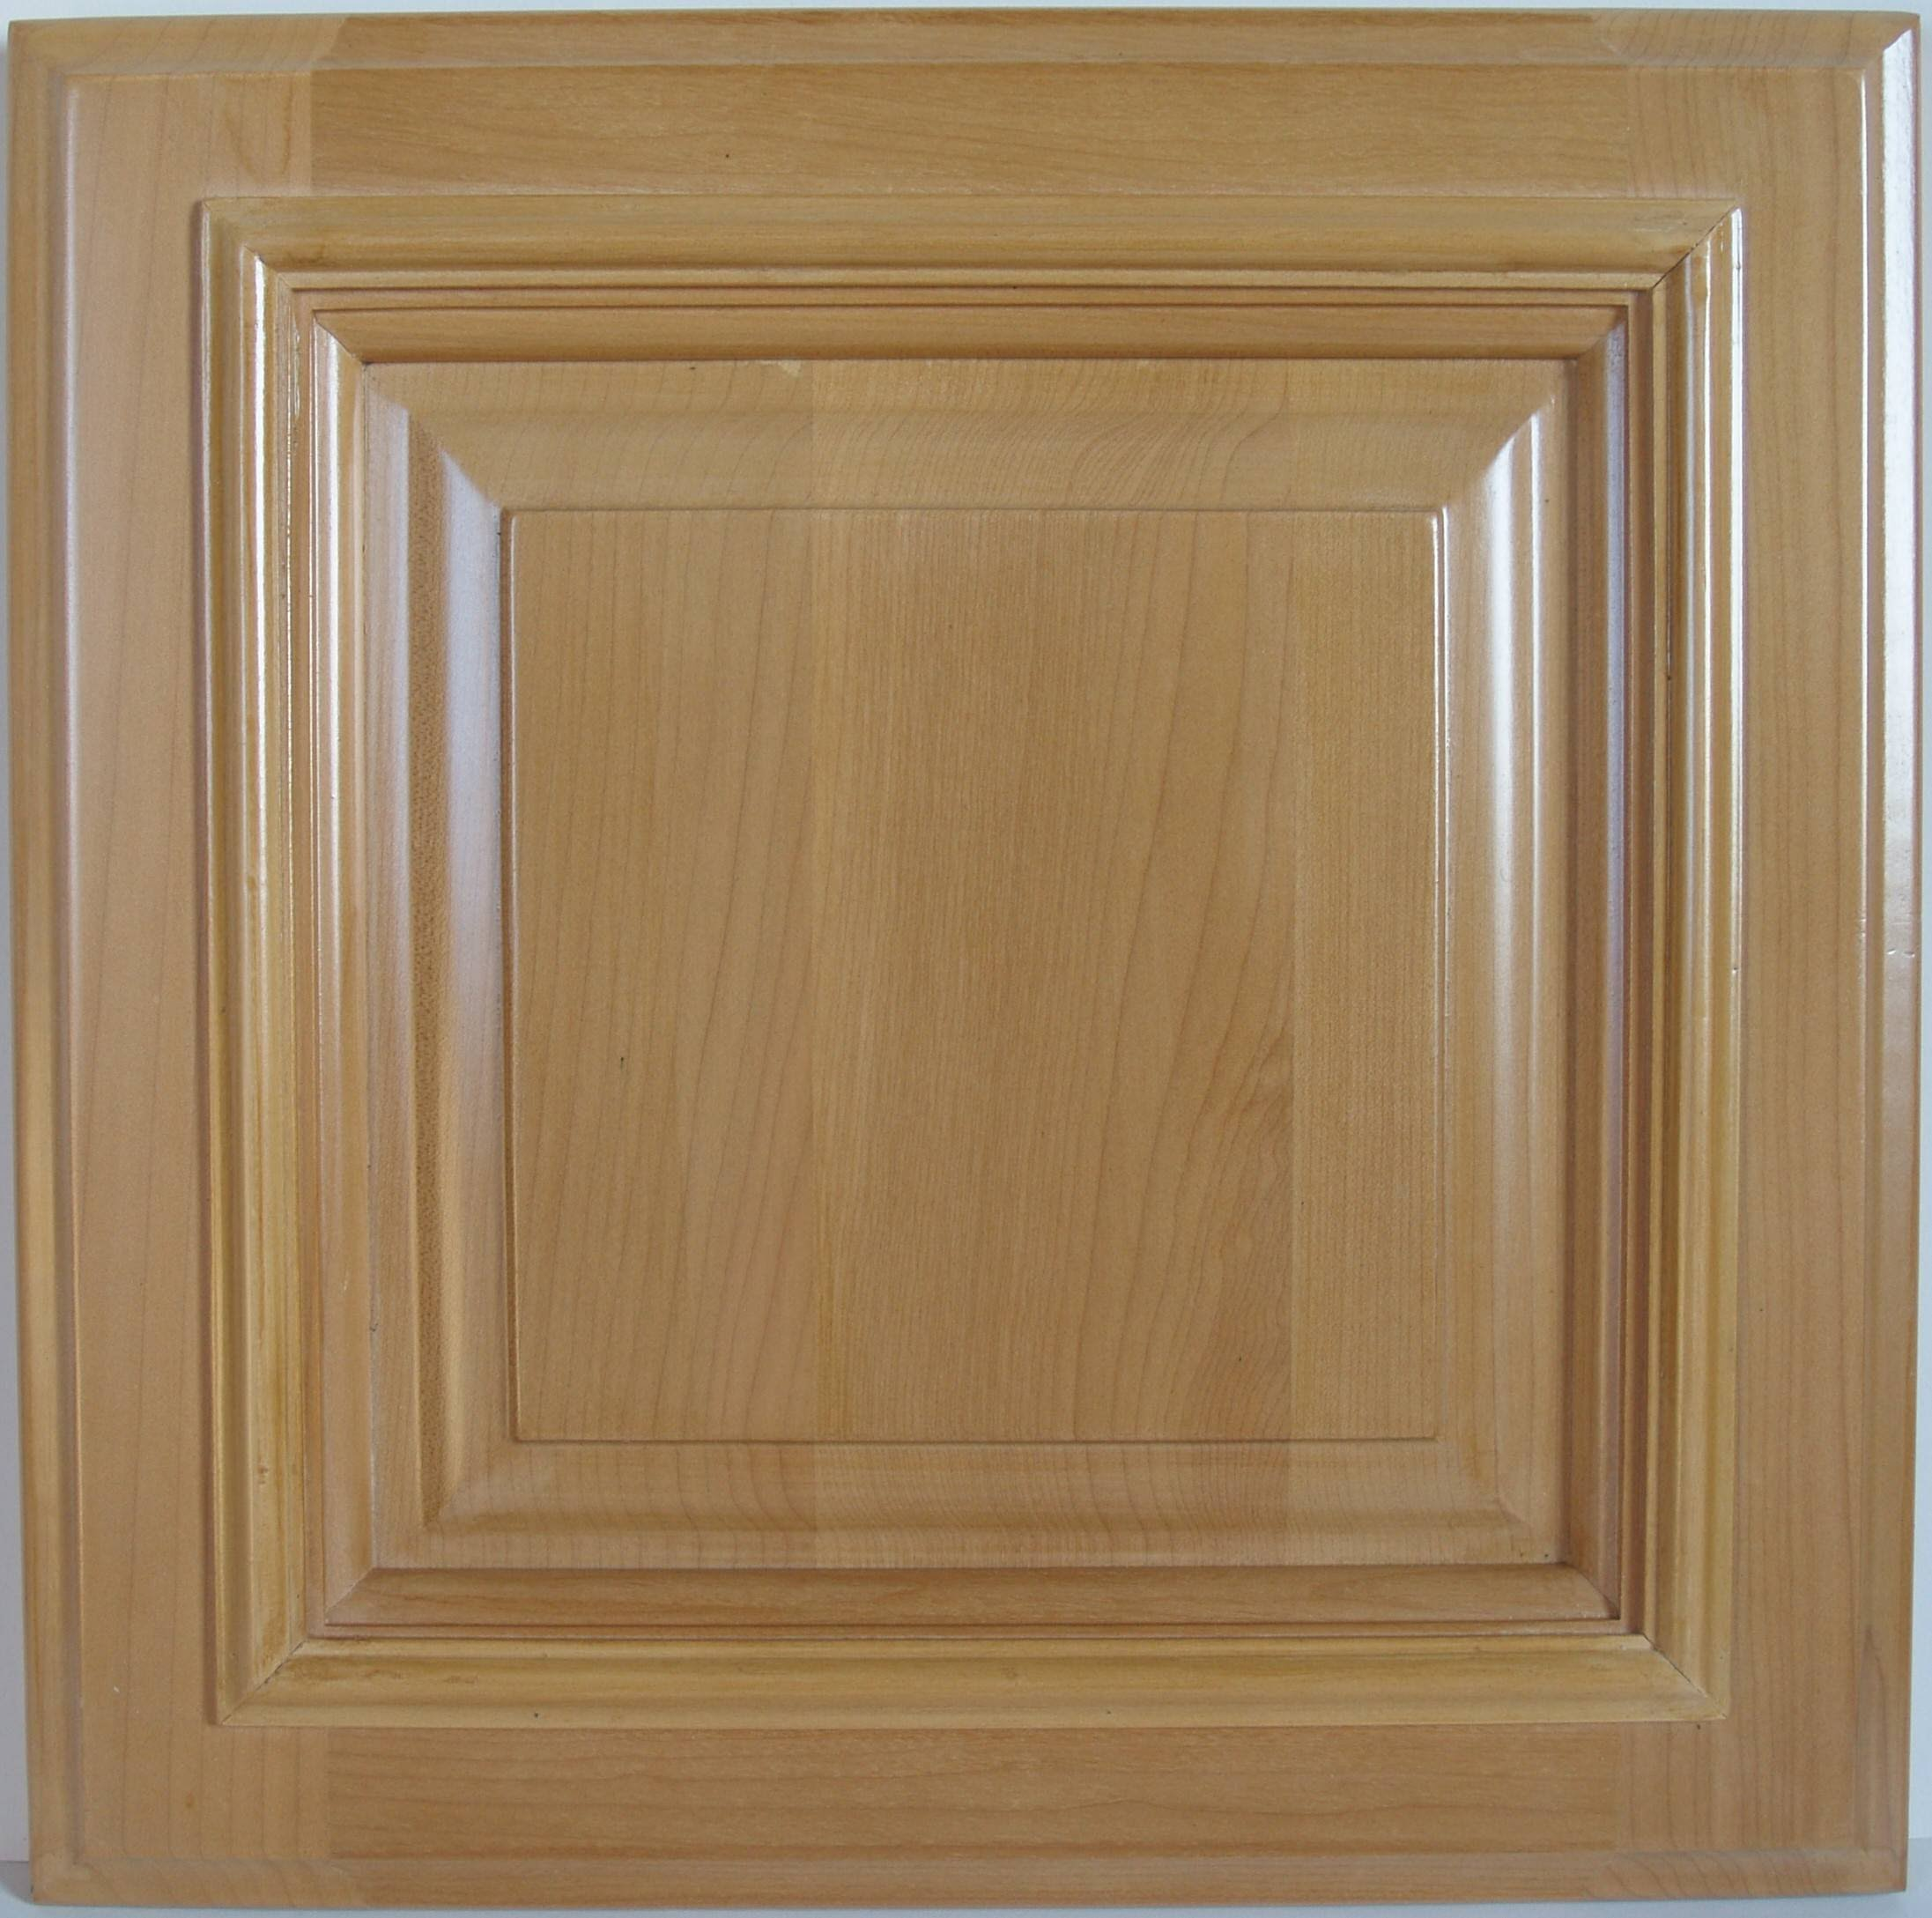 Kitchencabinetdoorstyles customwoodcraftinfo for Kitchen cabinets doors